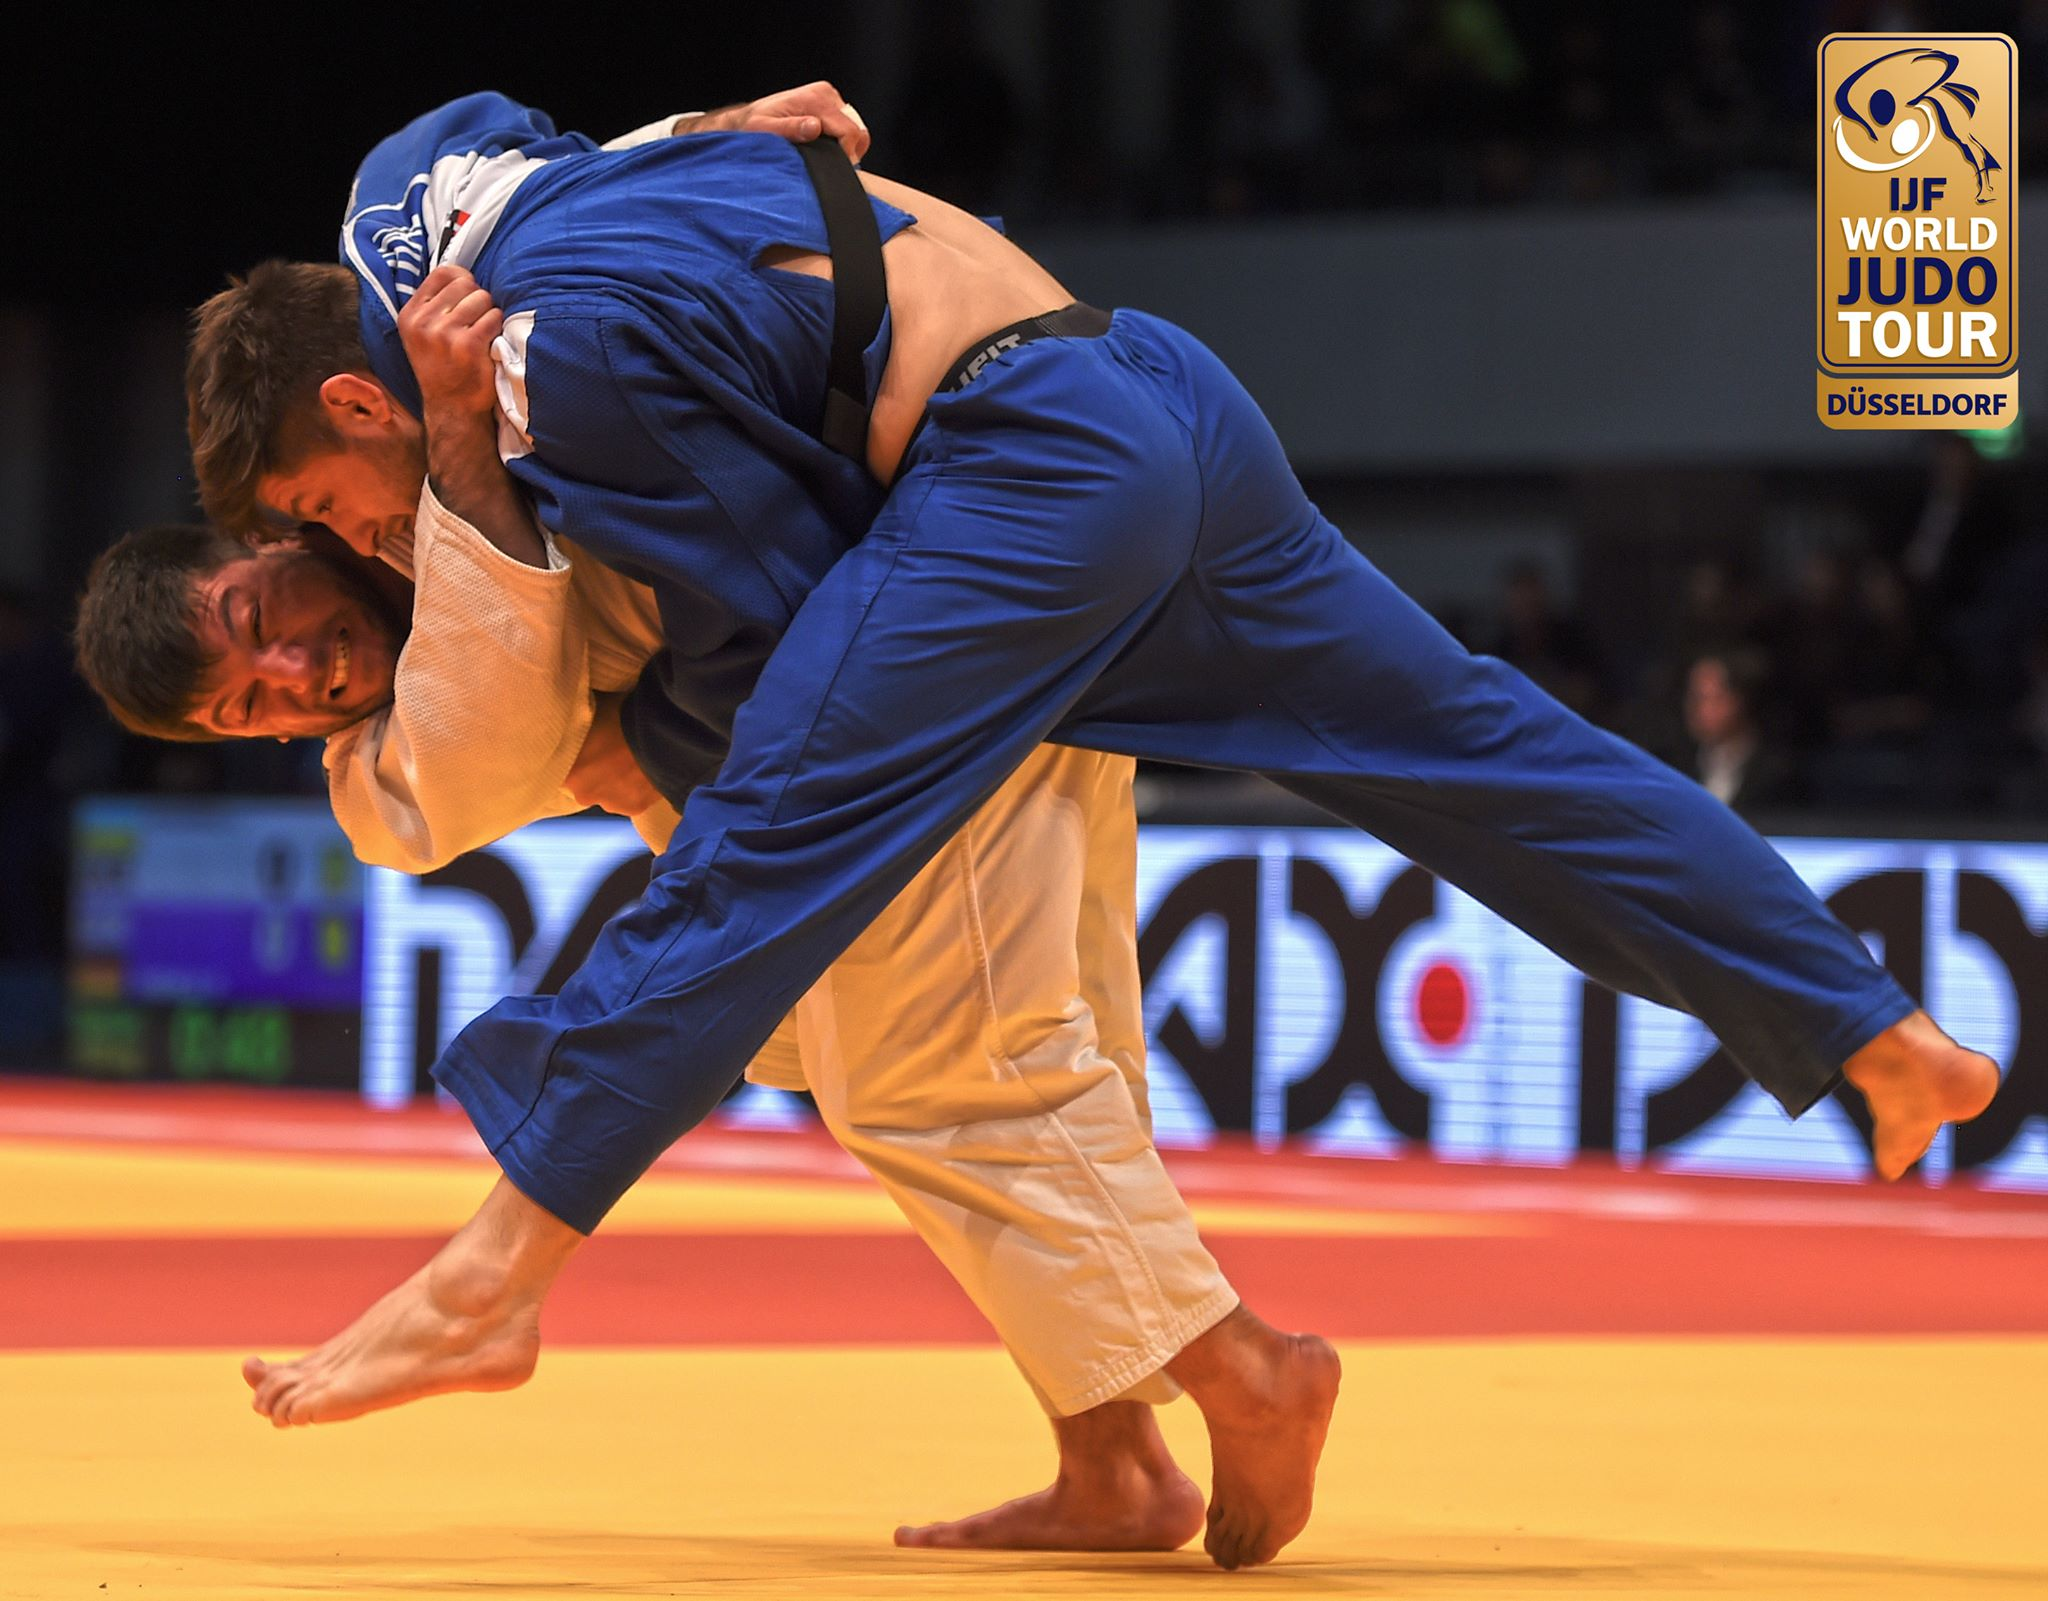 Judo Stock Photos and Images